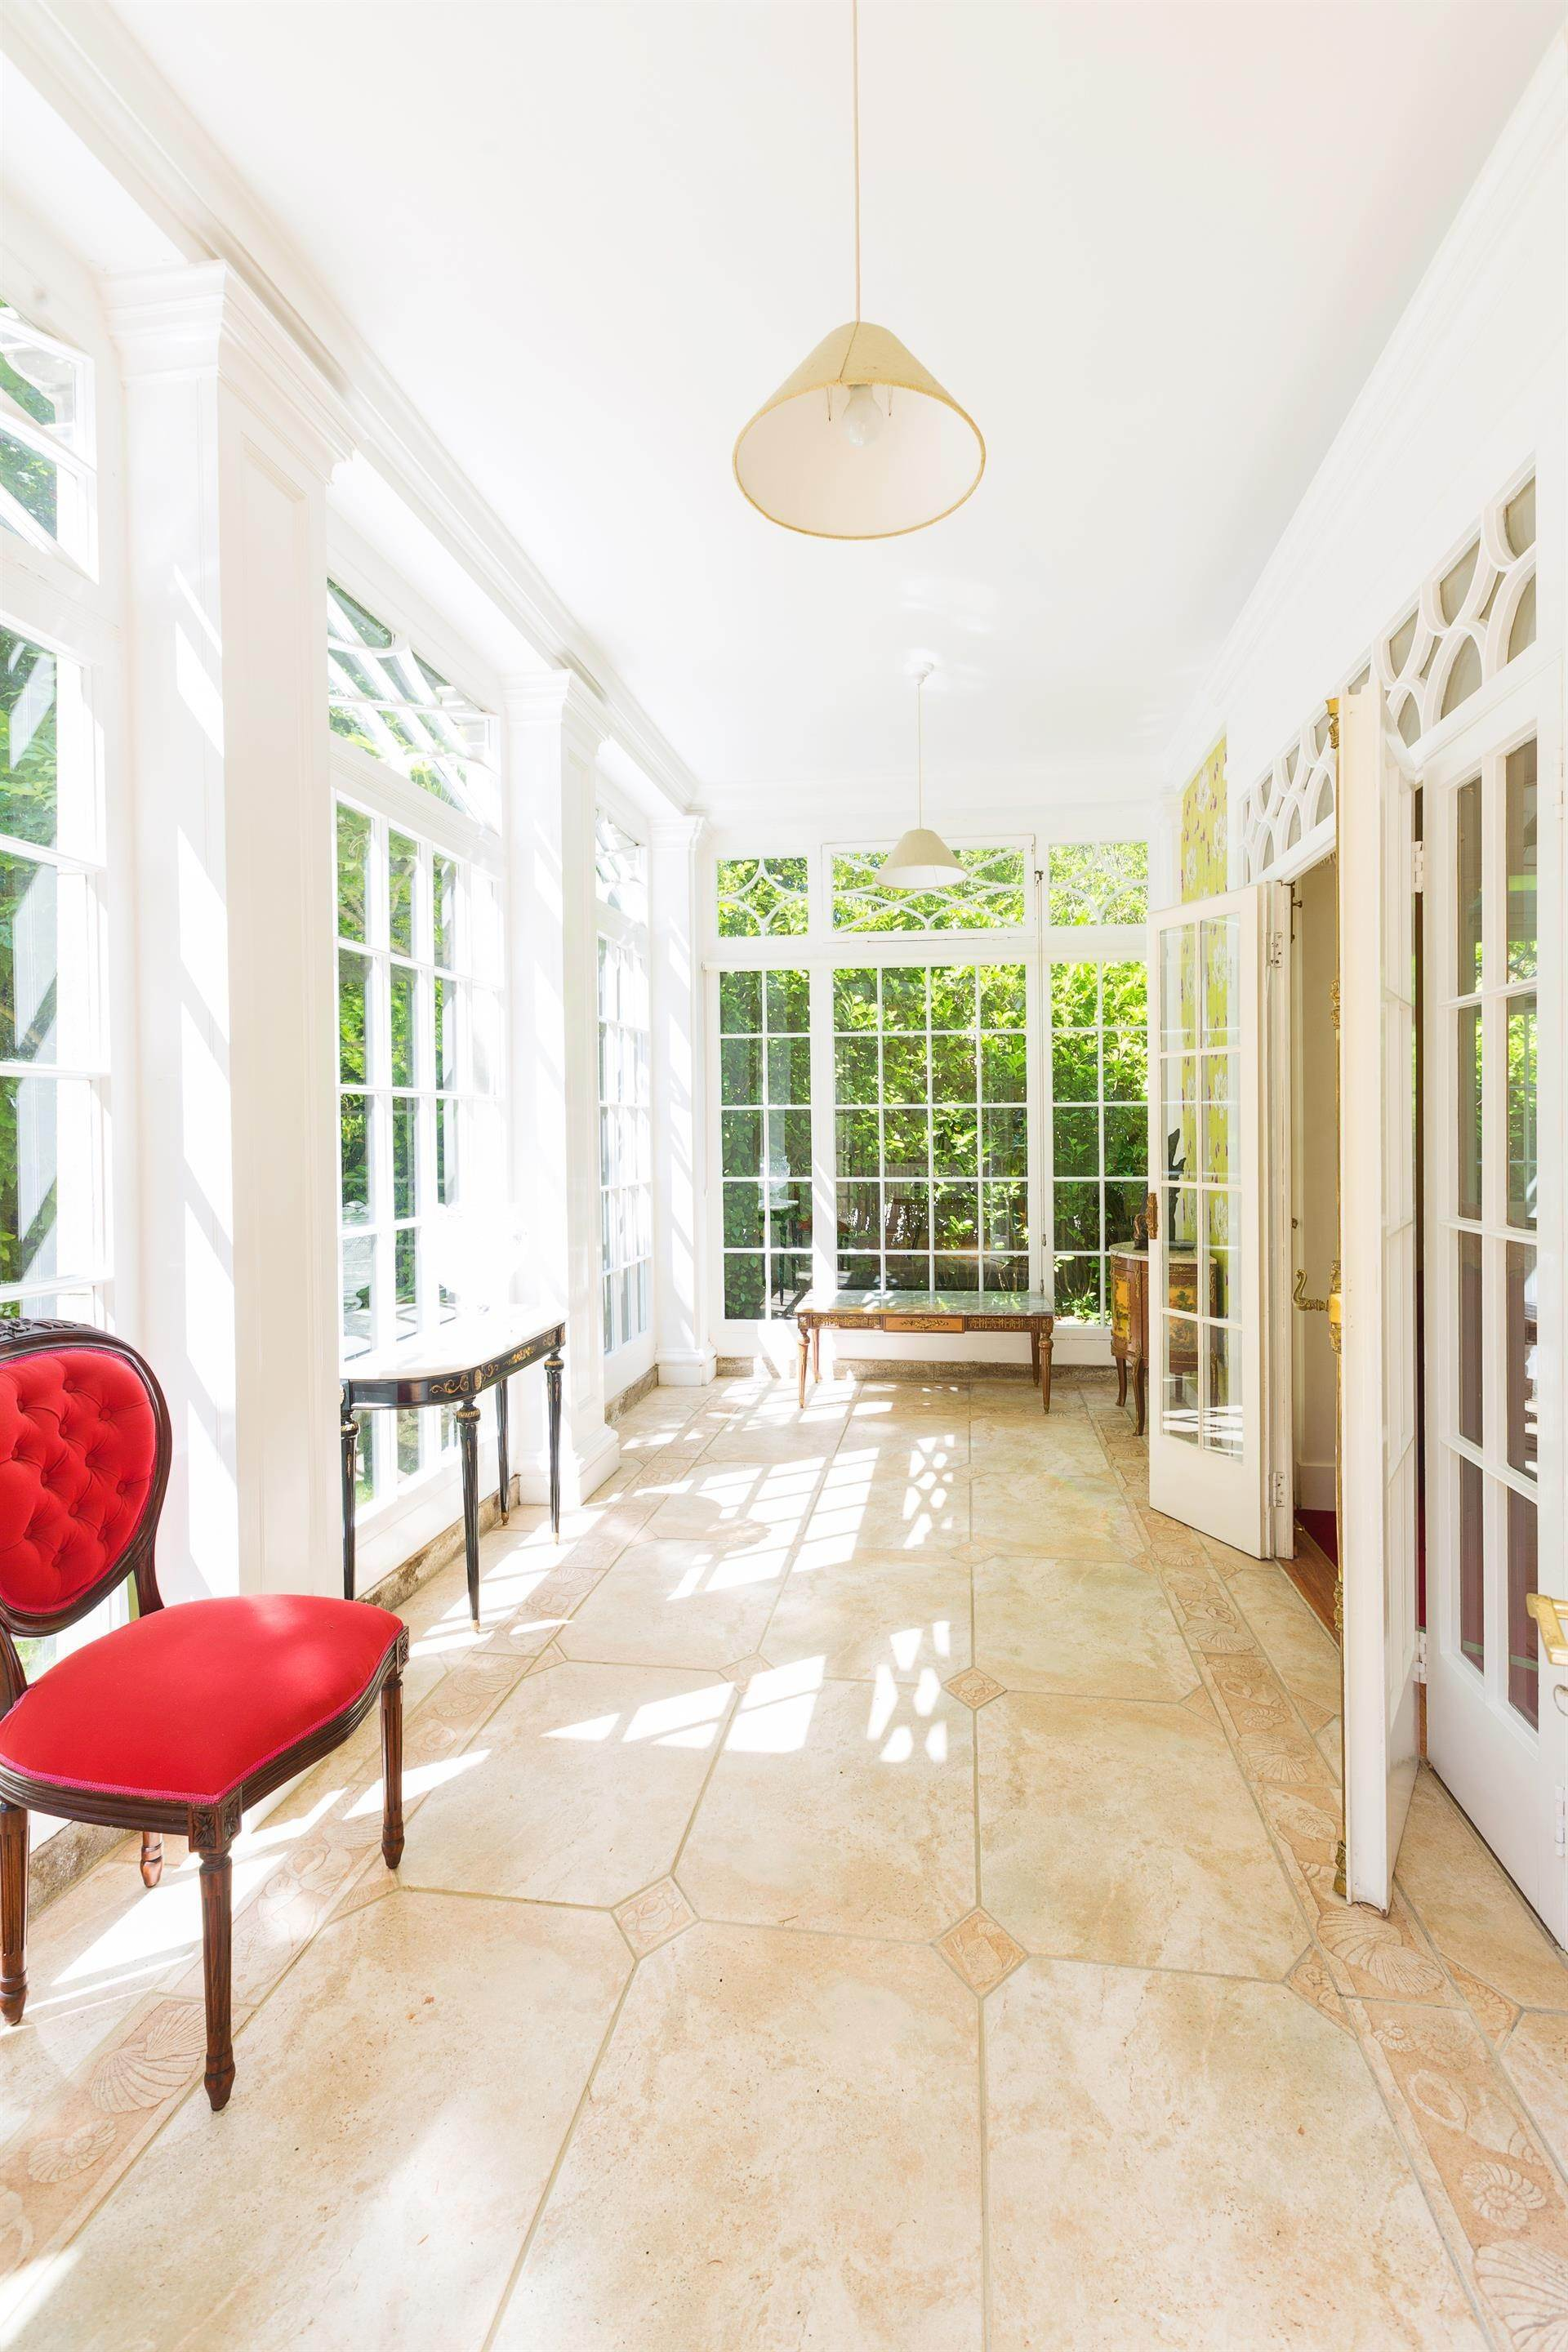 9. Single Family Home for Sale at Foxrock, Ireland